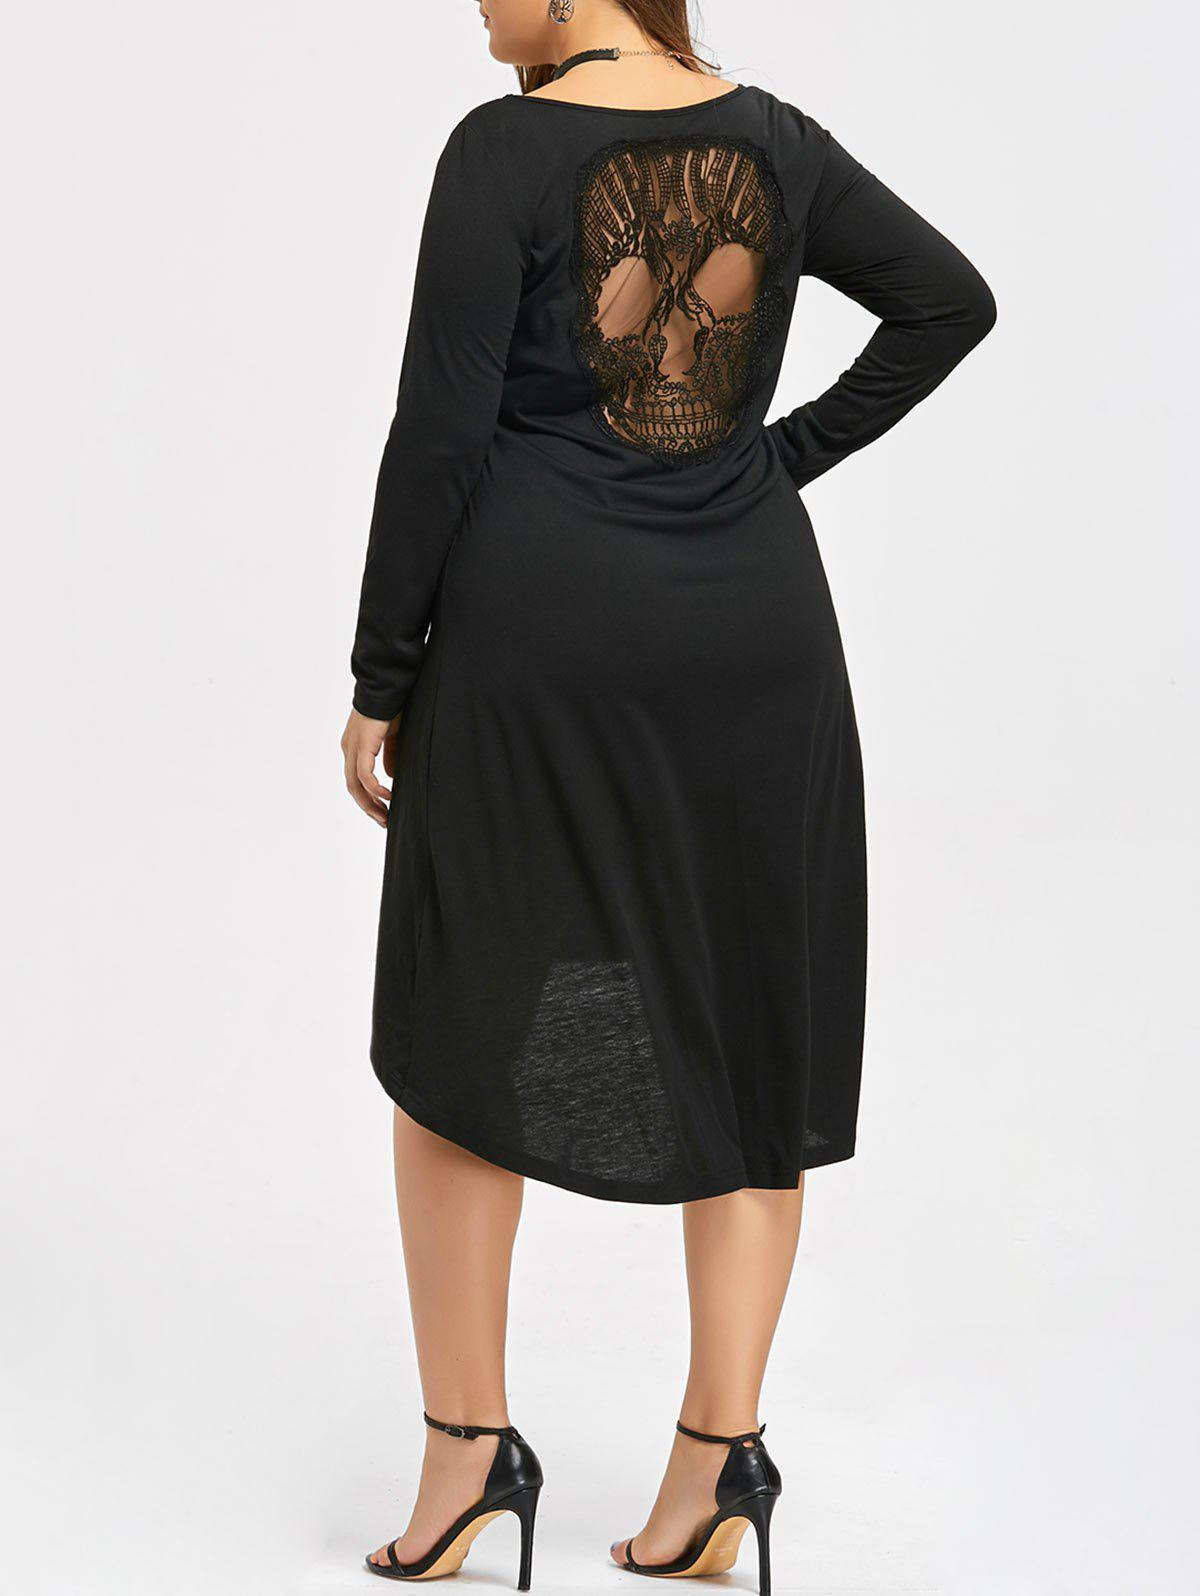 Halloween Plus Size Hollow Out Skull High Low DressWOMEN<br><br>Size: 4XL; Color: BLACK; Style: Cute; Material: Polyester,Spandex; Silhouette: Asymmetrical; Dresses Length: Mid-Calf; Neckline: Scoop Neck; Sleeve Length: Long Sleeves; Pattern Type: Solid; With Belt: No; Season: Fall,Spring; Weight: 0.3690kg; Package Contents: 1 x Dress;